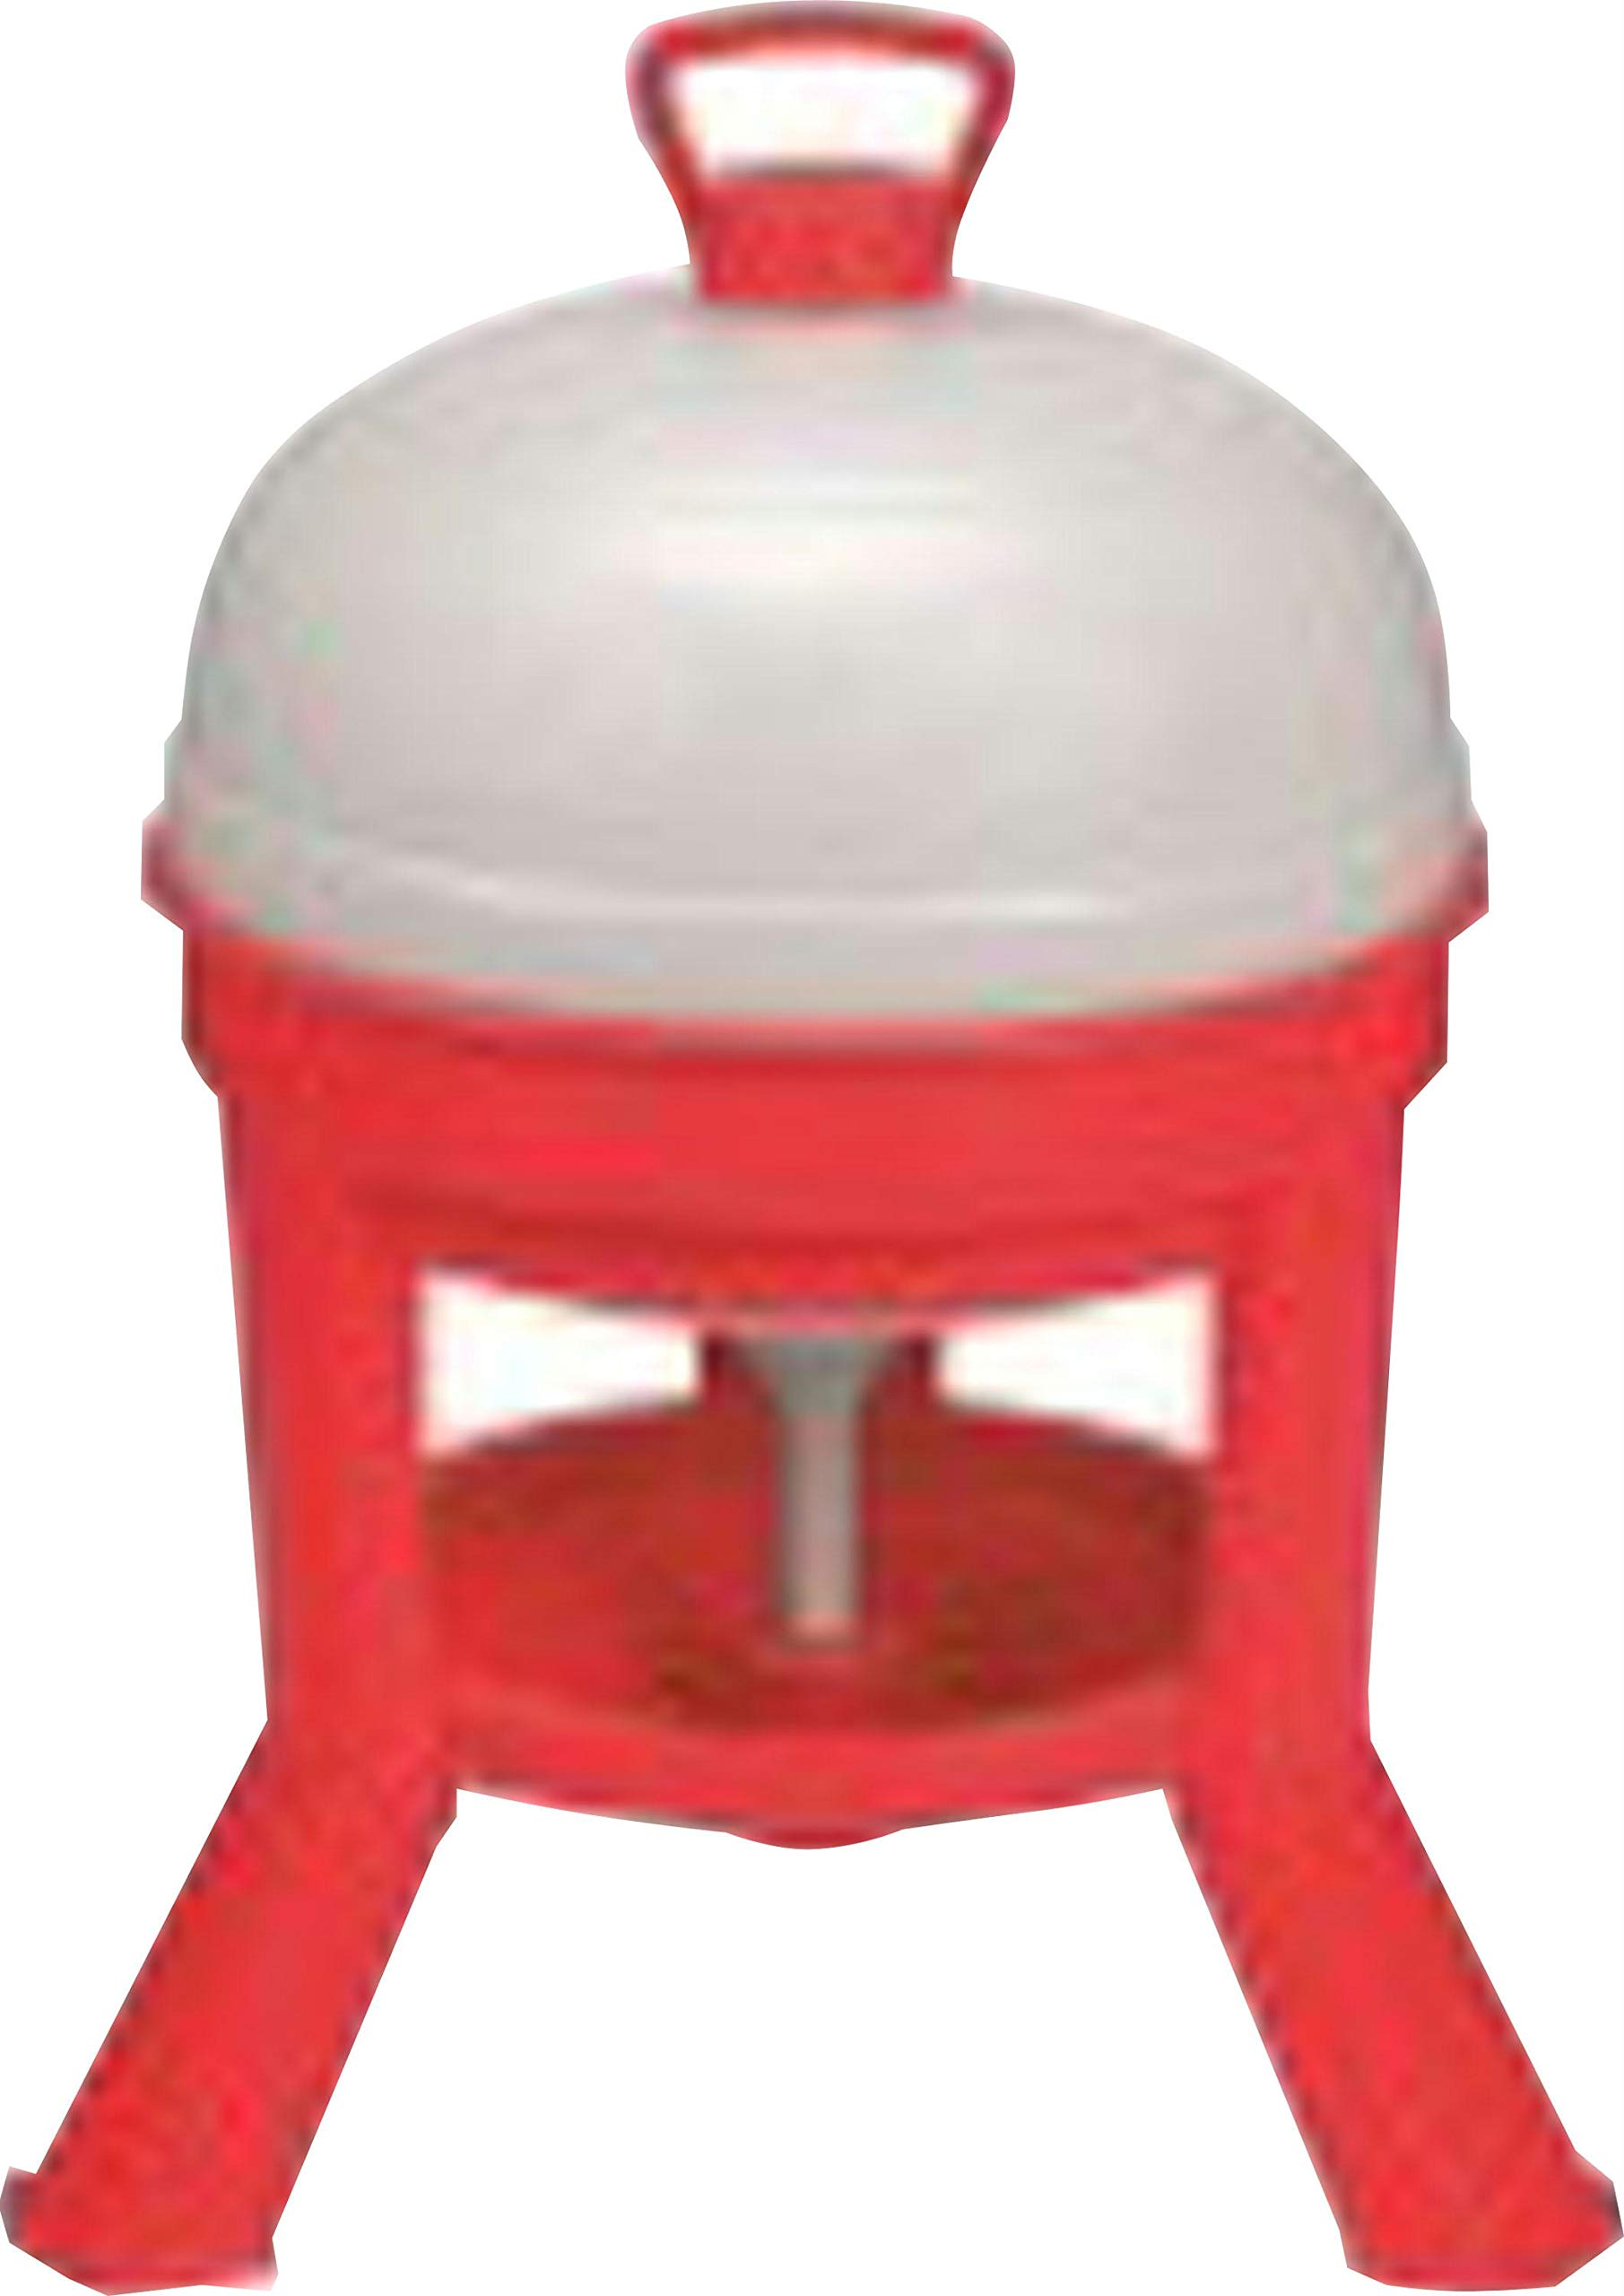 LITTLE GIANT DOMEWTR5 Plastic 5 Gallon Poultry Dome Waterer by LITTLE GIANT